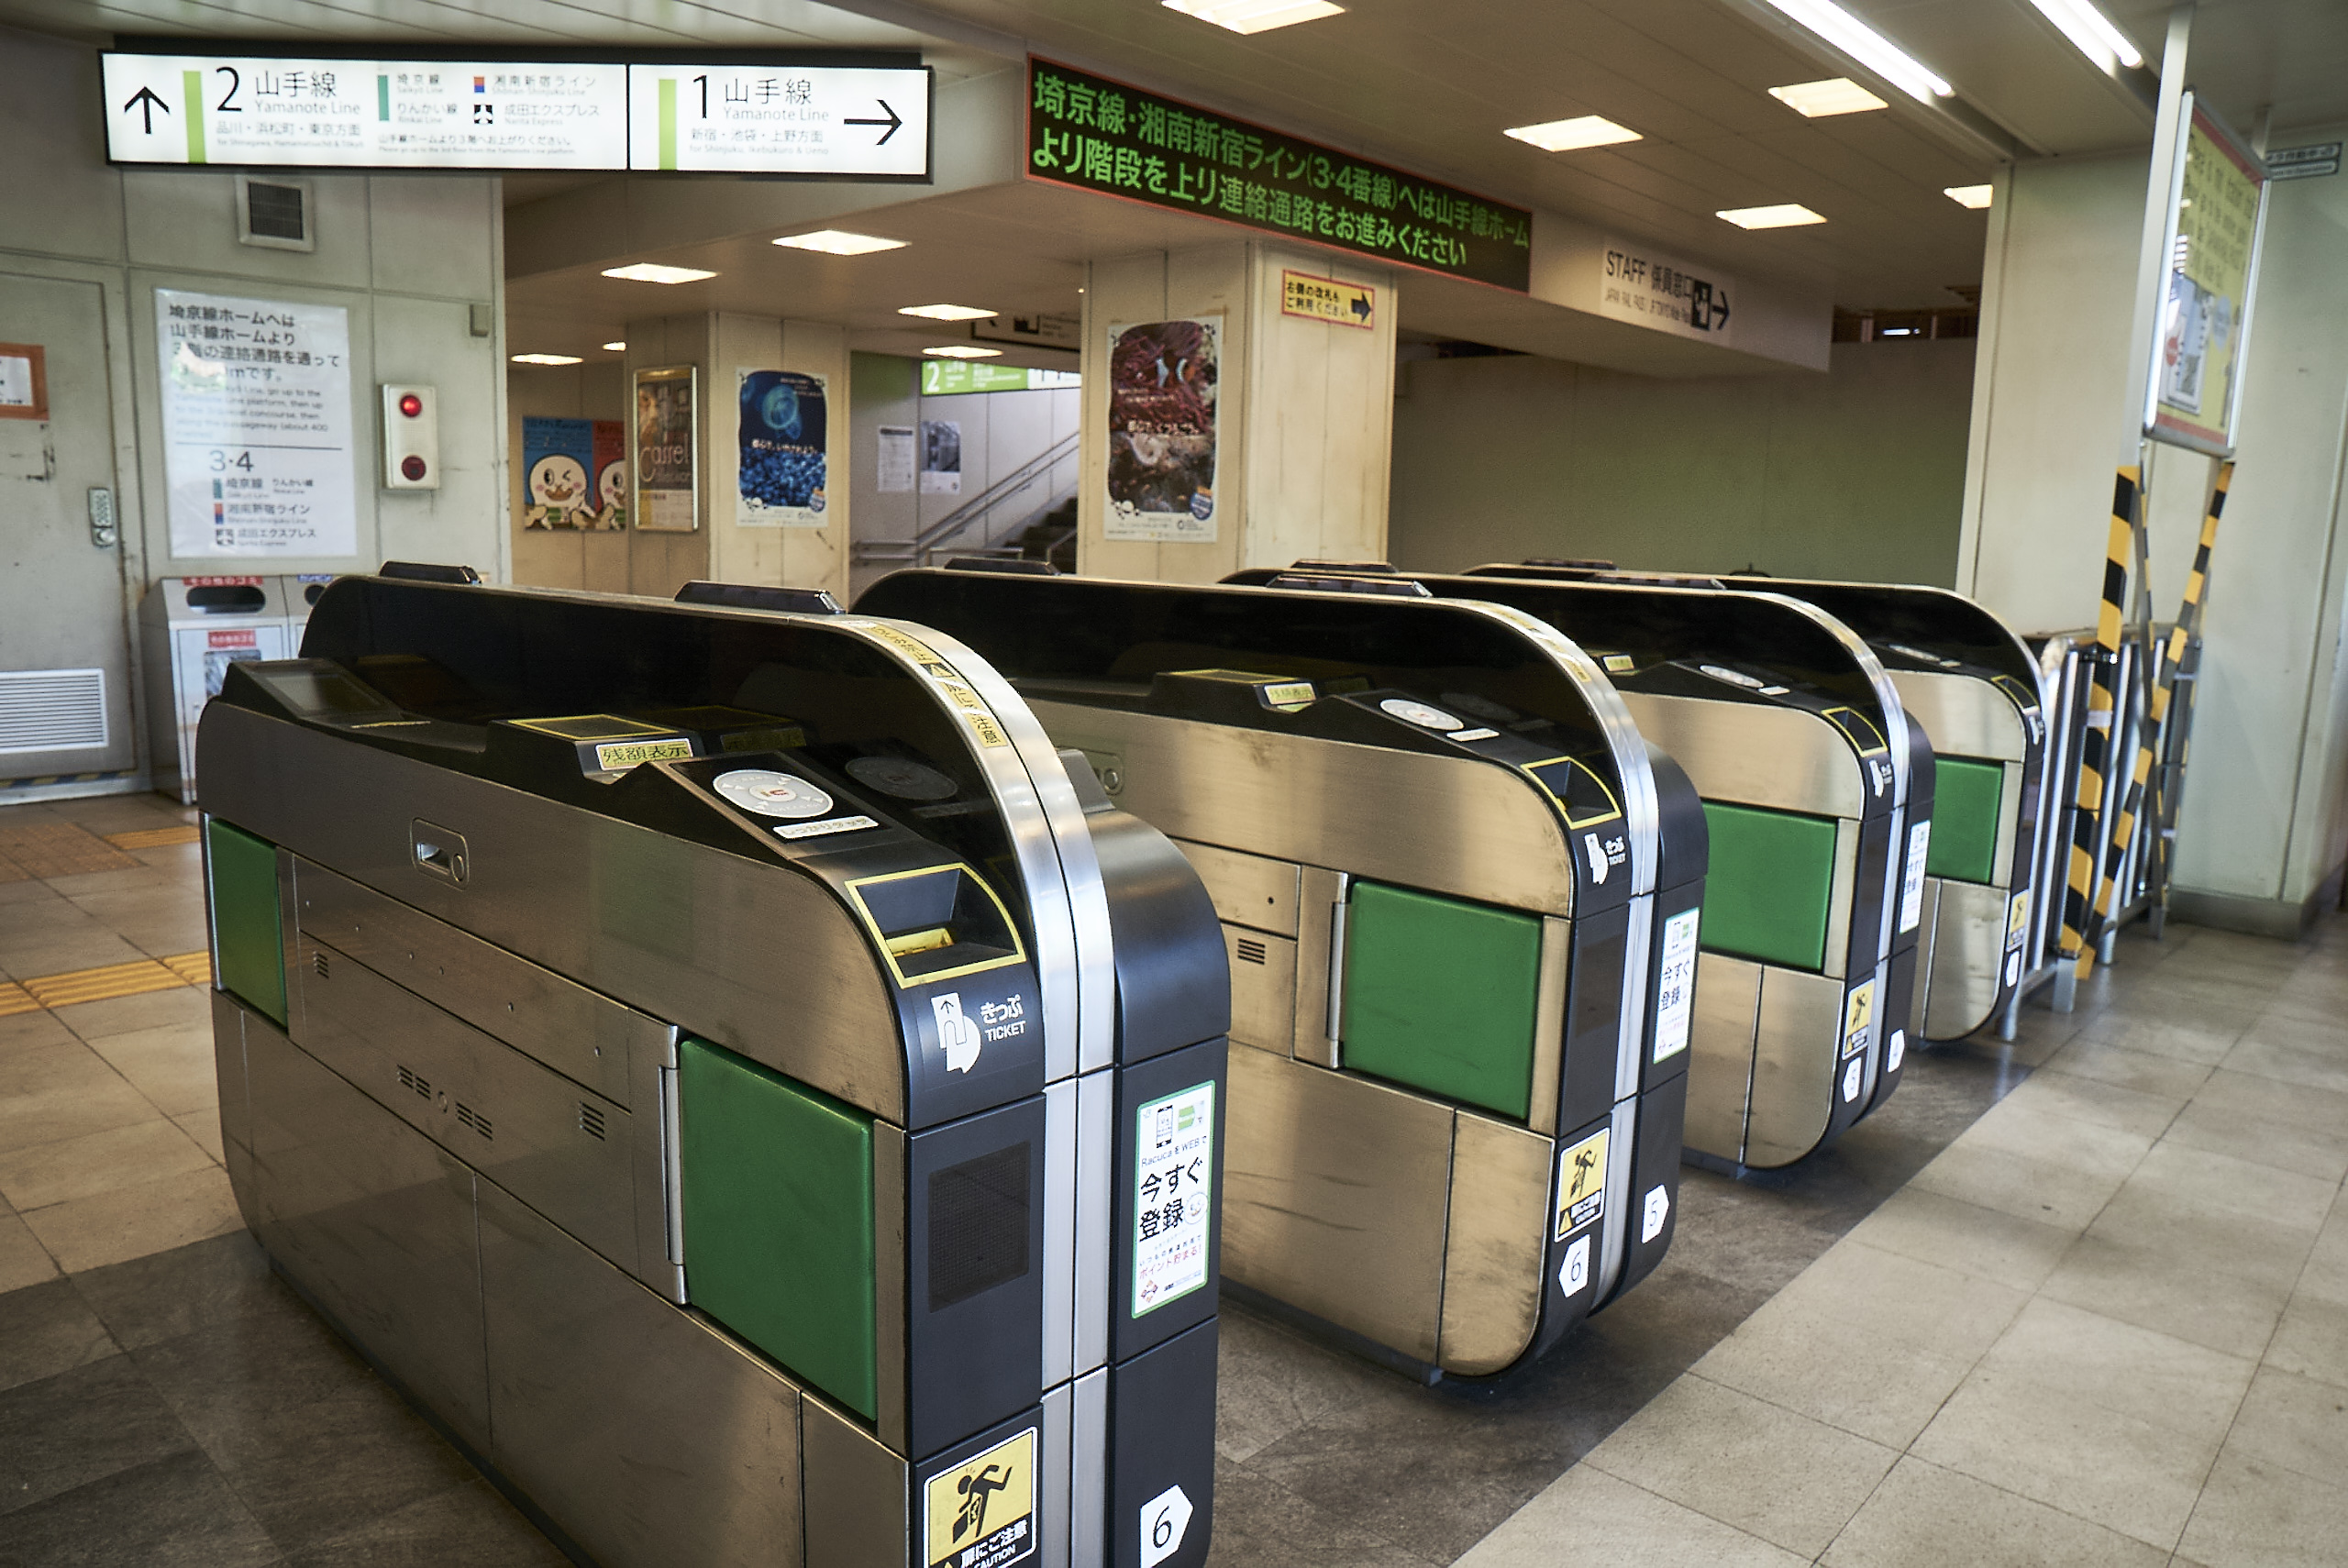 The ticket gate in episode 1